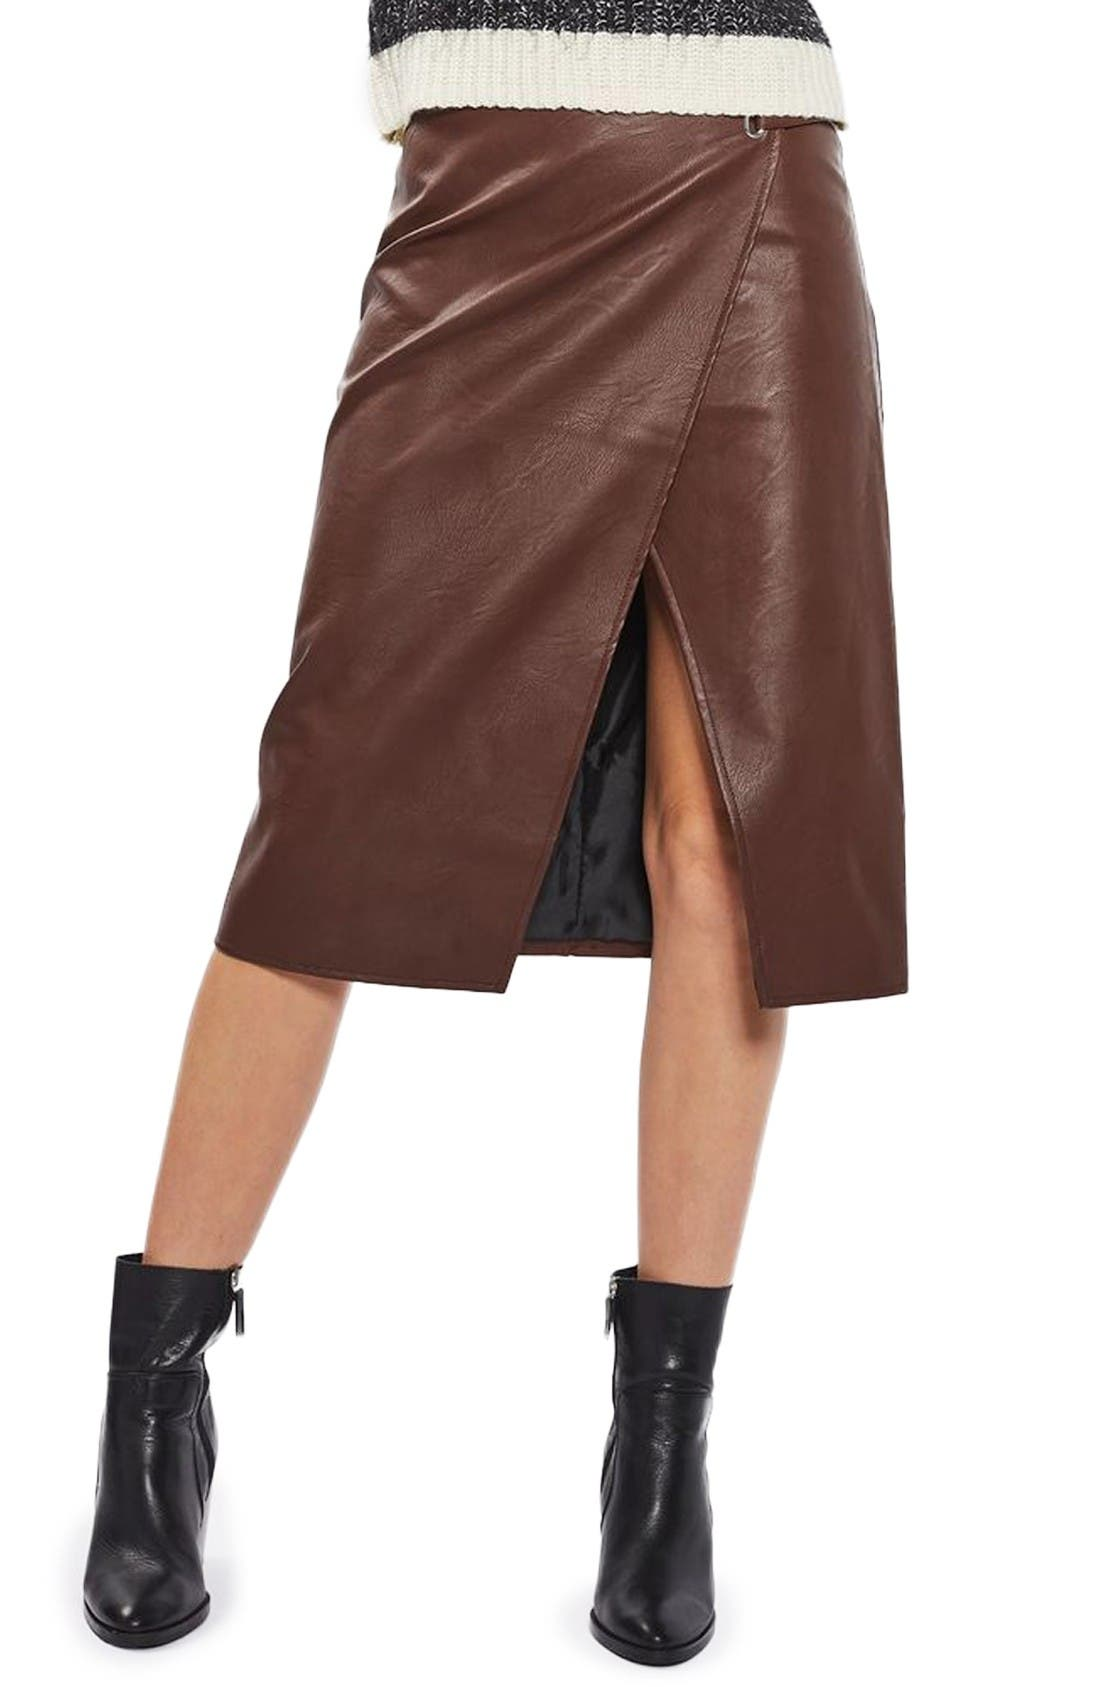 Alternate Image 1 Selected - Topshop Faux Leather Wrap Midi Skirt